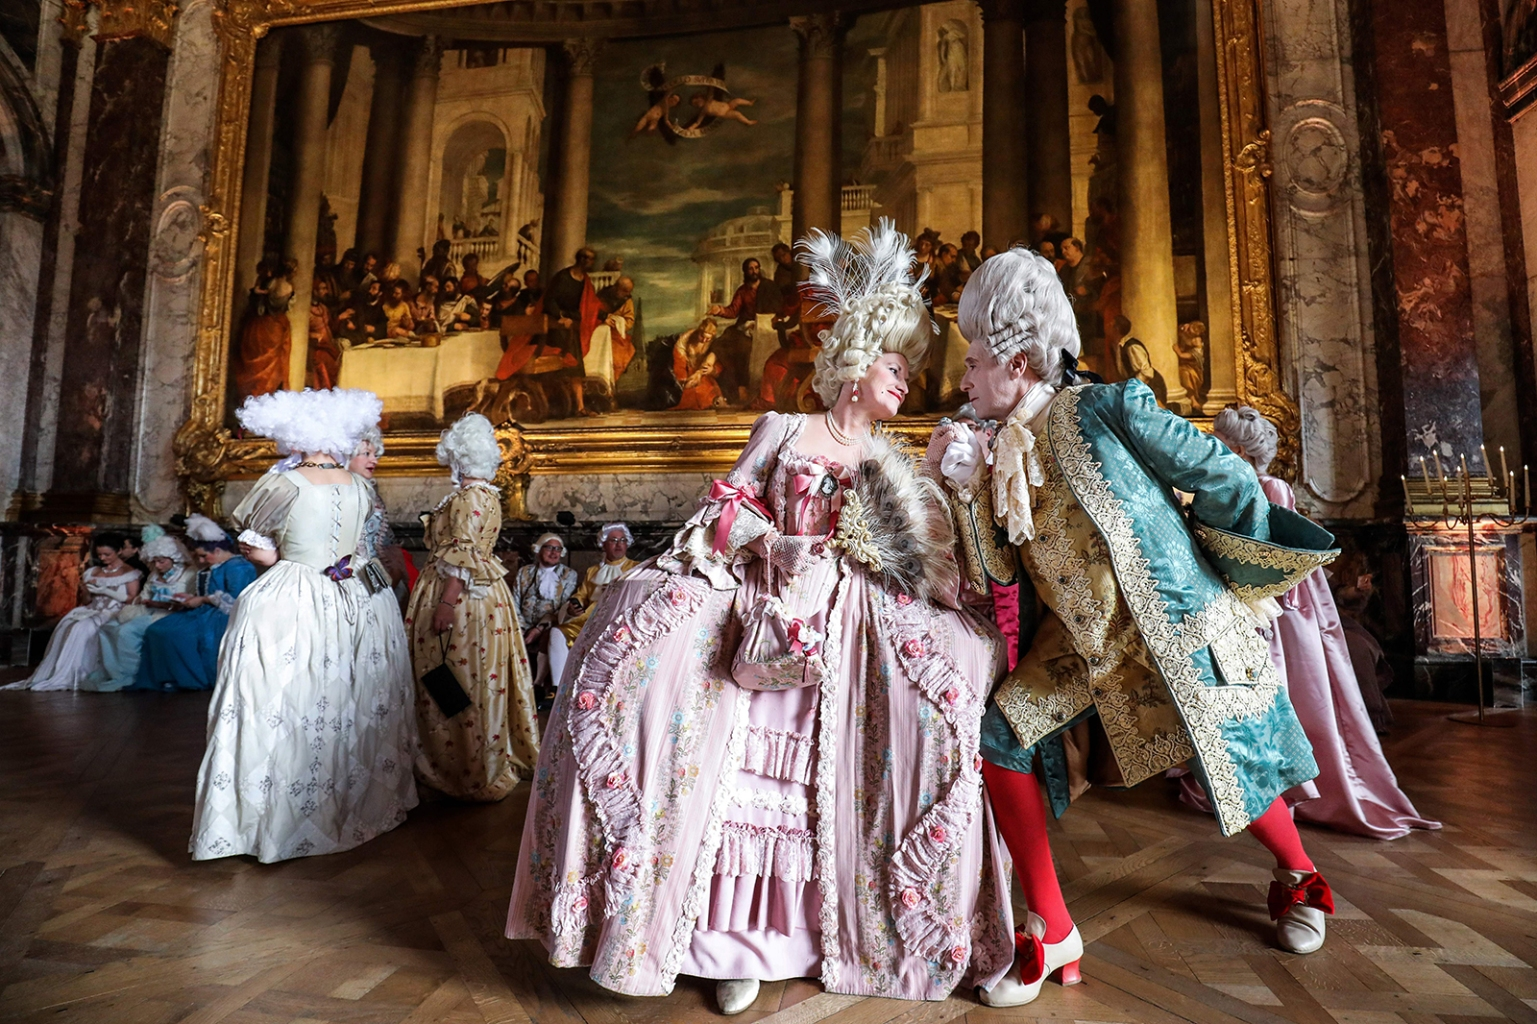 An Italian Venitian couple dressed in period costumes pose as they take part in the Fetes Galantes fancy dress evening at the Chateau de Versailles on May 27. LUDOVIC MARIN/AFP/Getty Images